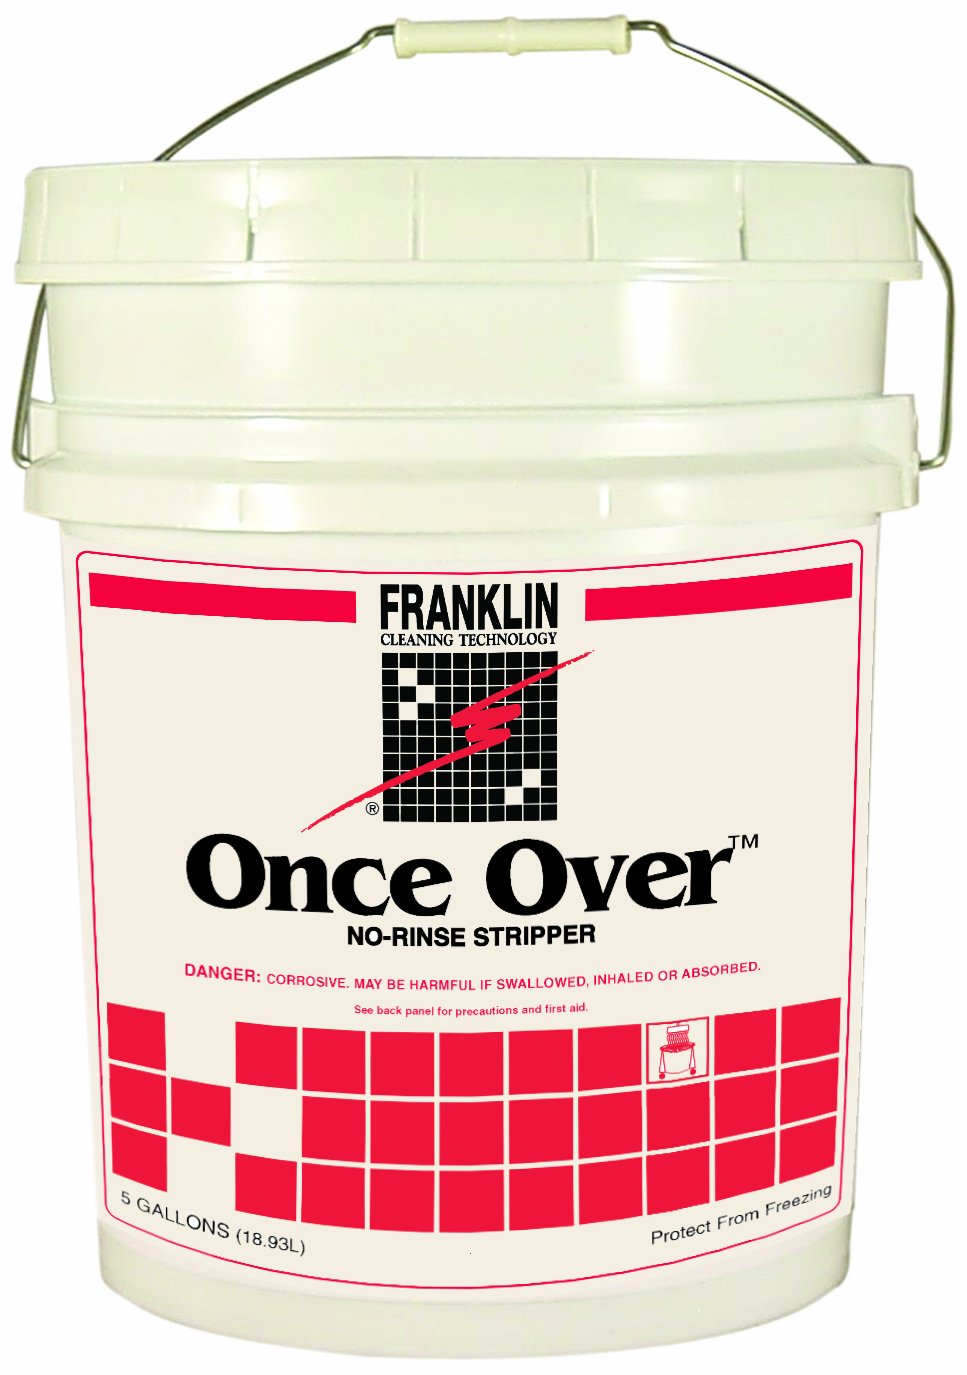 Franklin Cleaning Technology F200026 Once Over Floor Stripper, Mint Scent, Liquid, 5 Gallon Pail